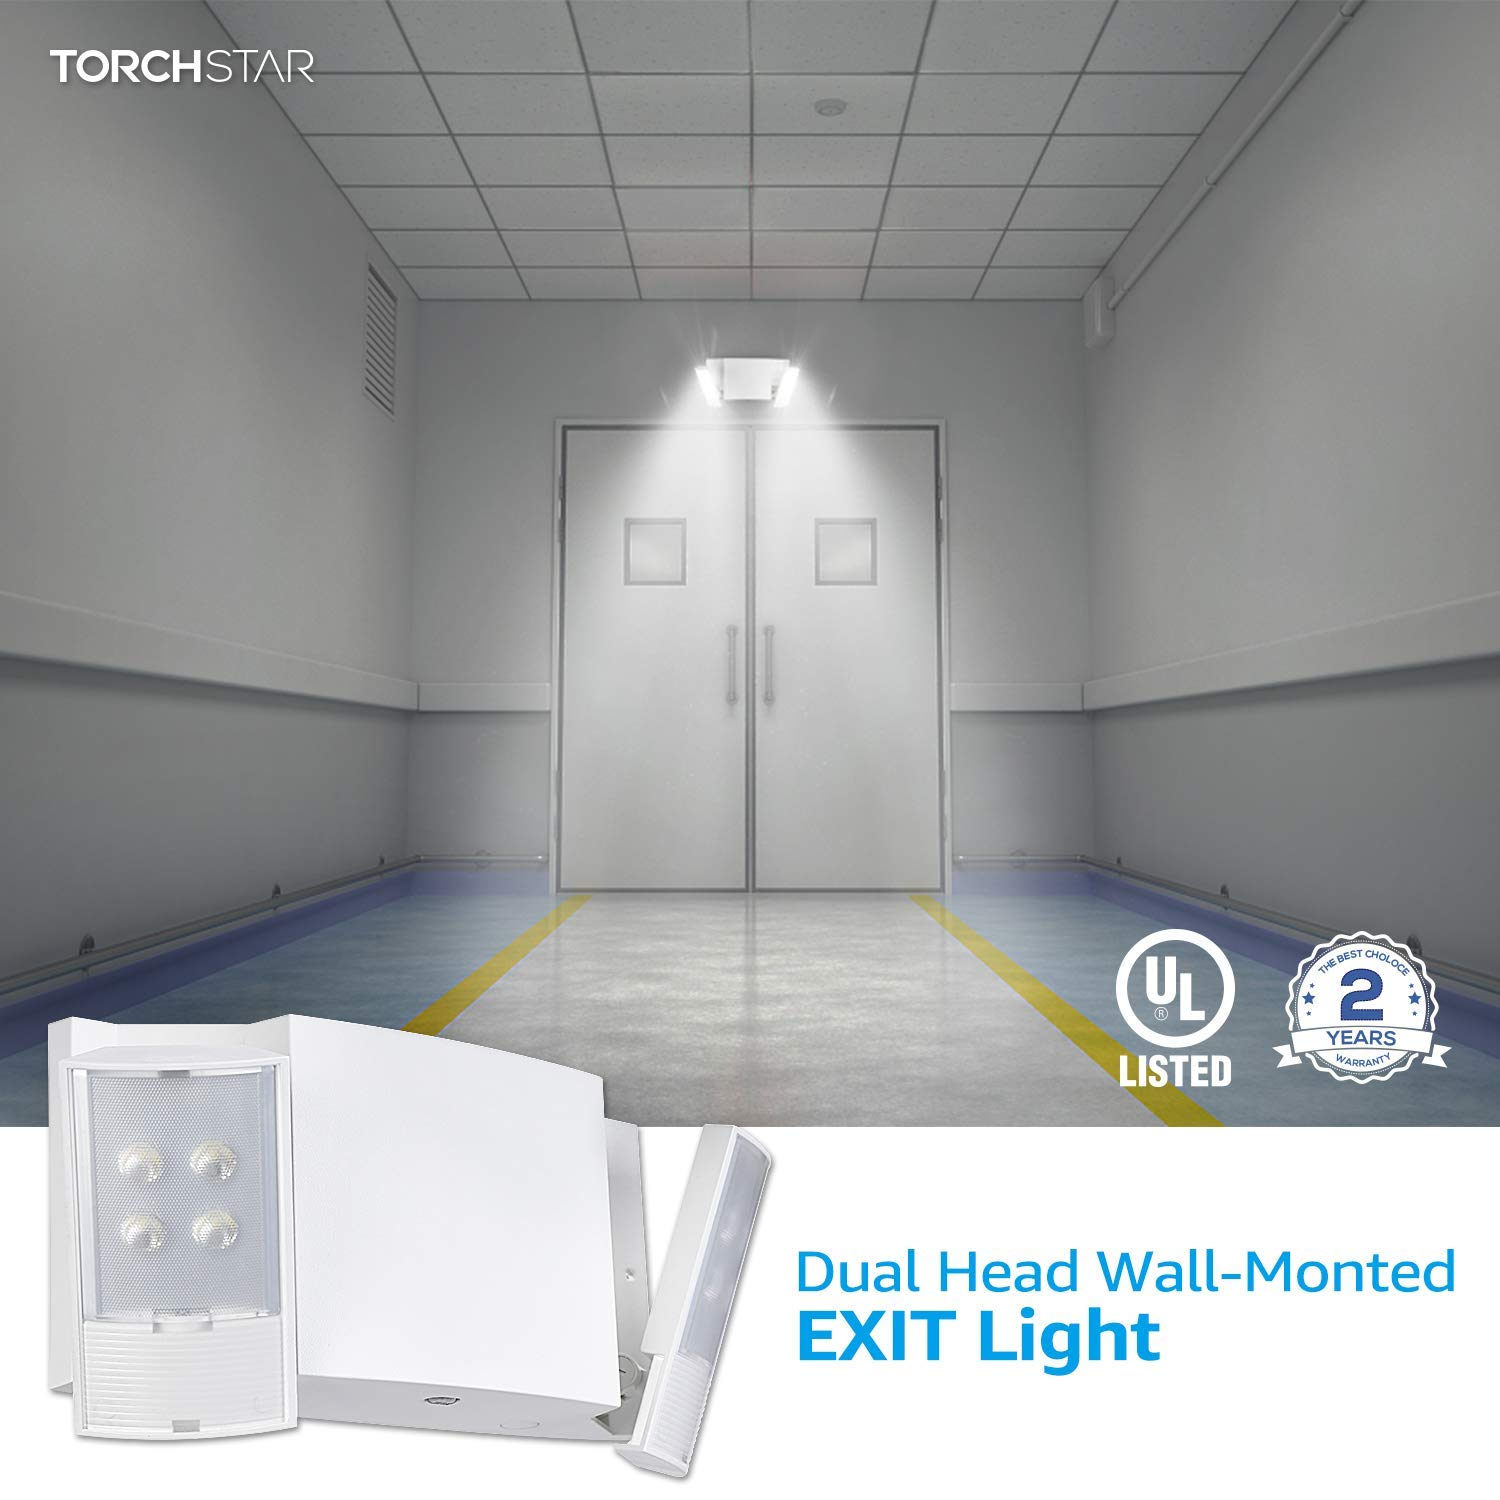 TORCHSTAR LED Emergency Light with Battery Backup 1000mAh Rechargeable Battery Renewed UL924 Listed High Light Output for Office Buildings Hotels Adjustable Dual Heads Pack of 2 120-277V Warehouses